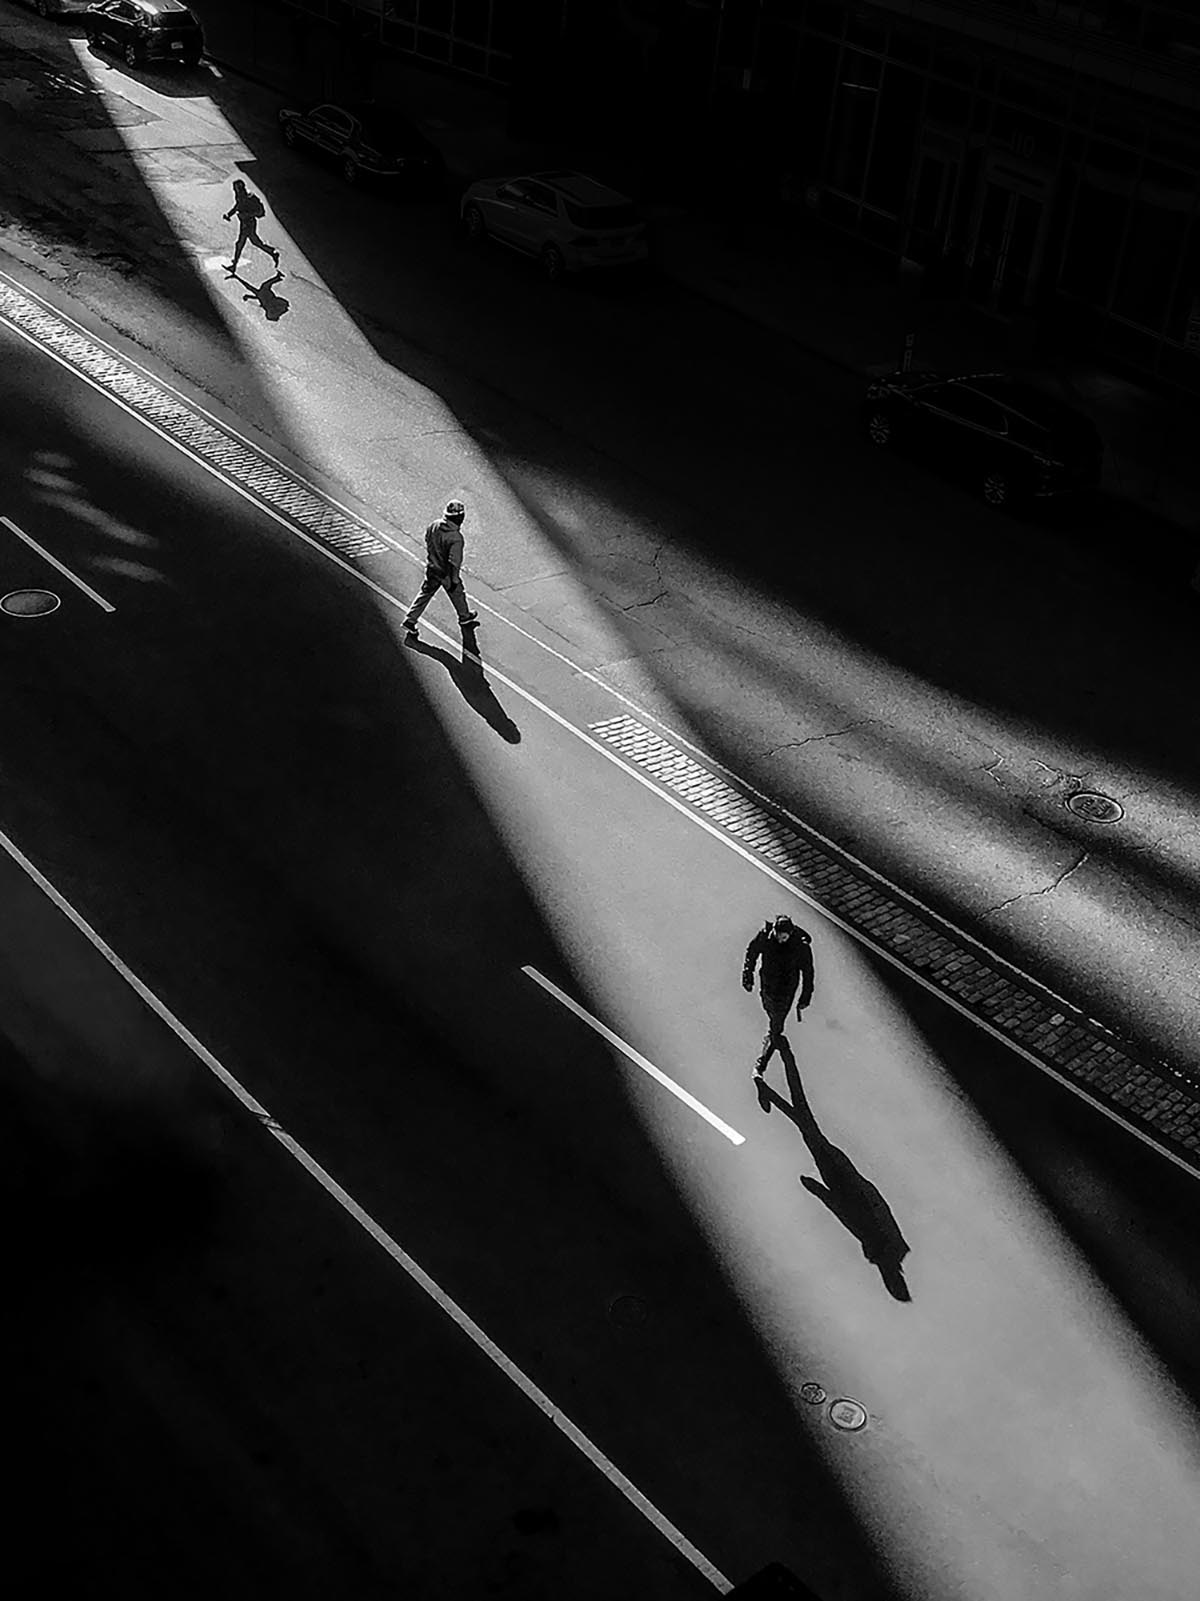 Jeff Larason – Street Photography